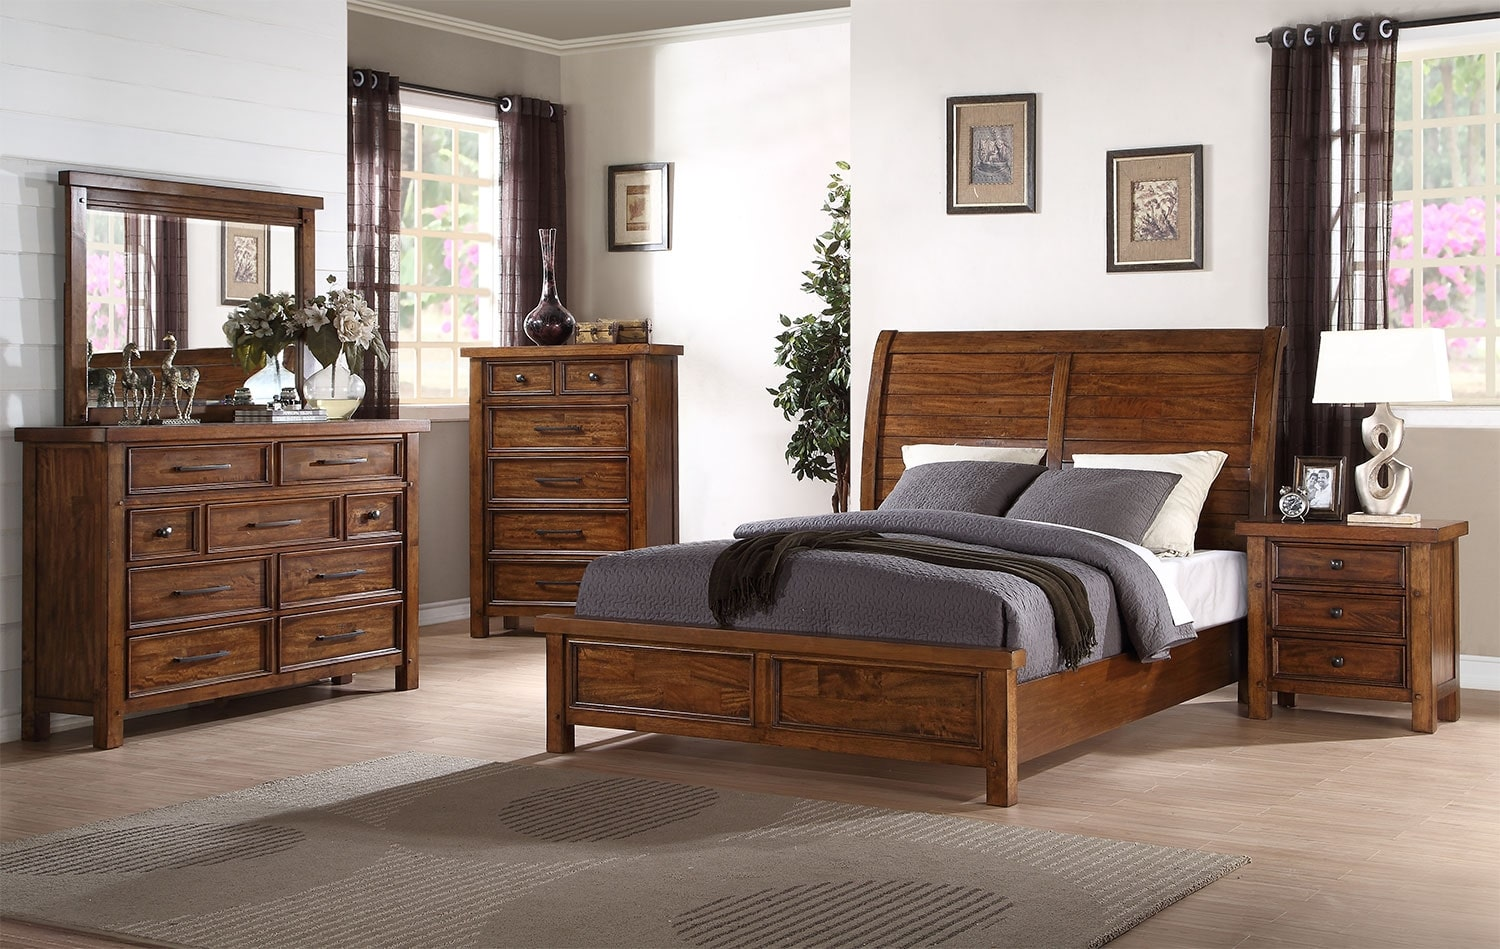 Sonoma 7-Piece Queen Bedroom Package – Light Brown